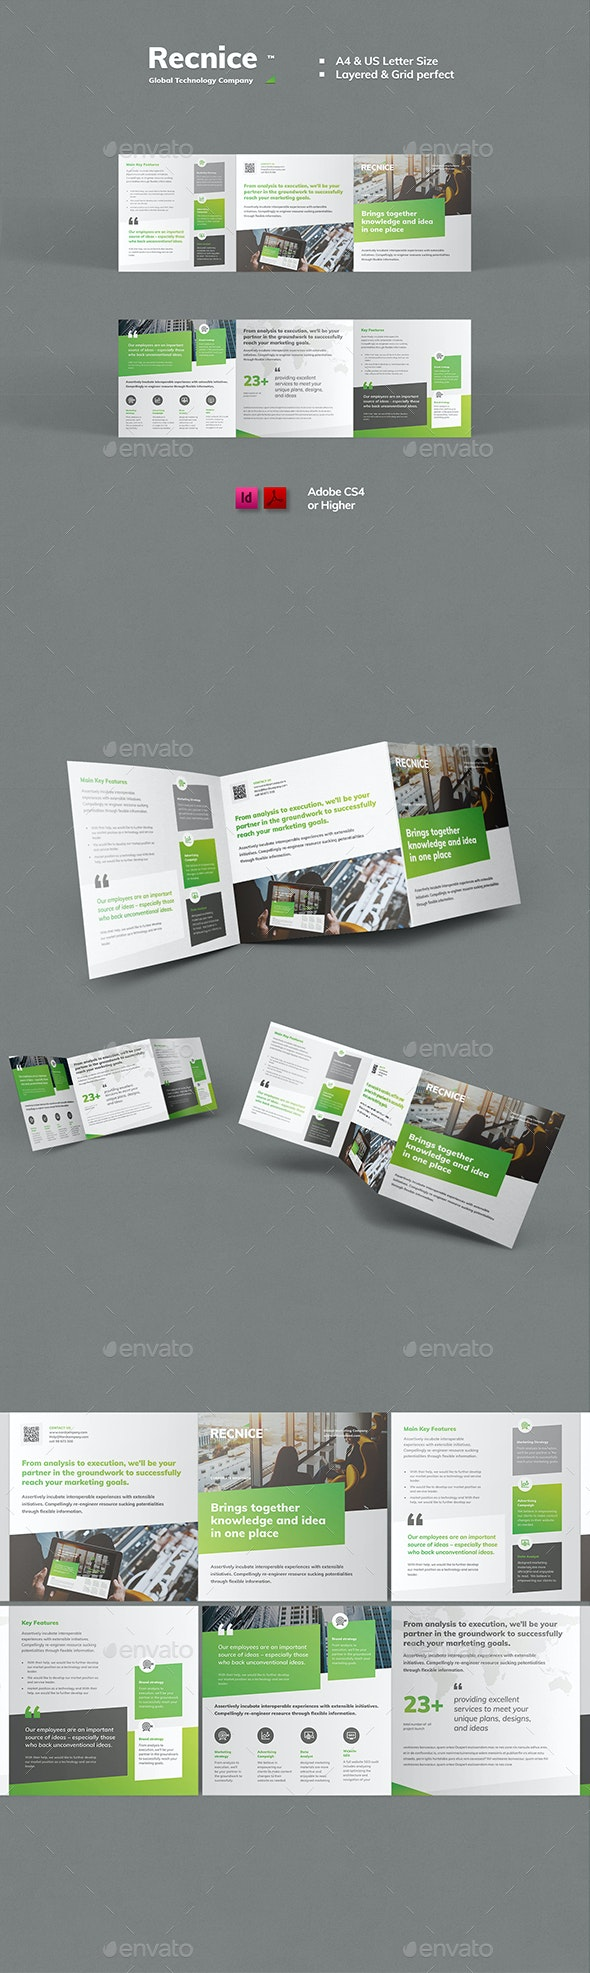 Trifold Square Brochure Template - Brochures Print Templates